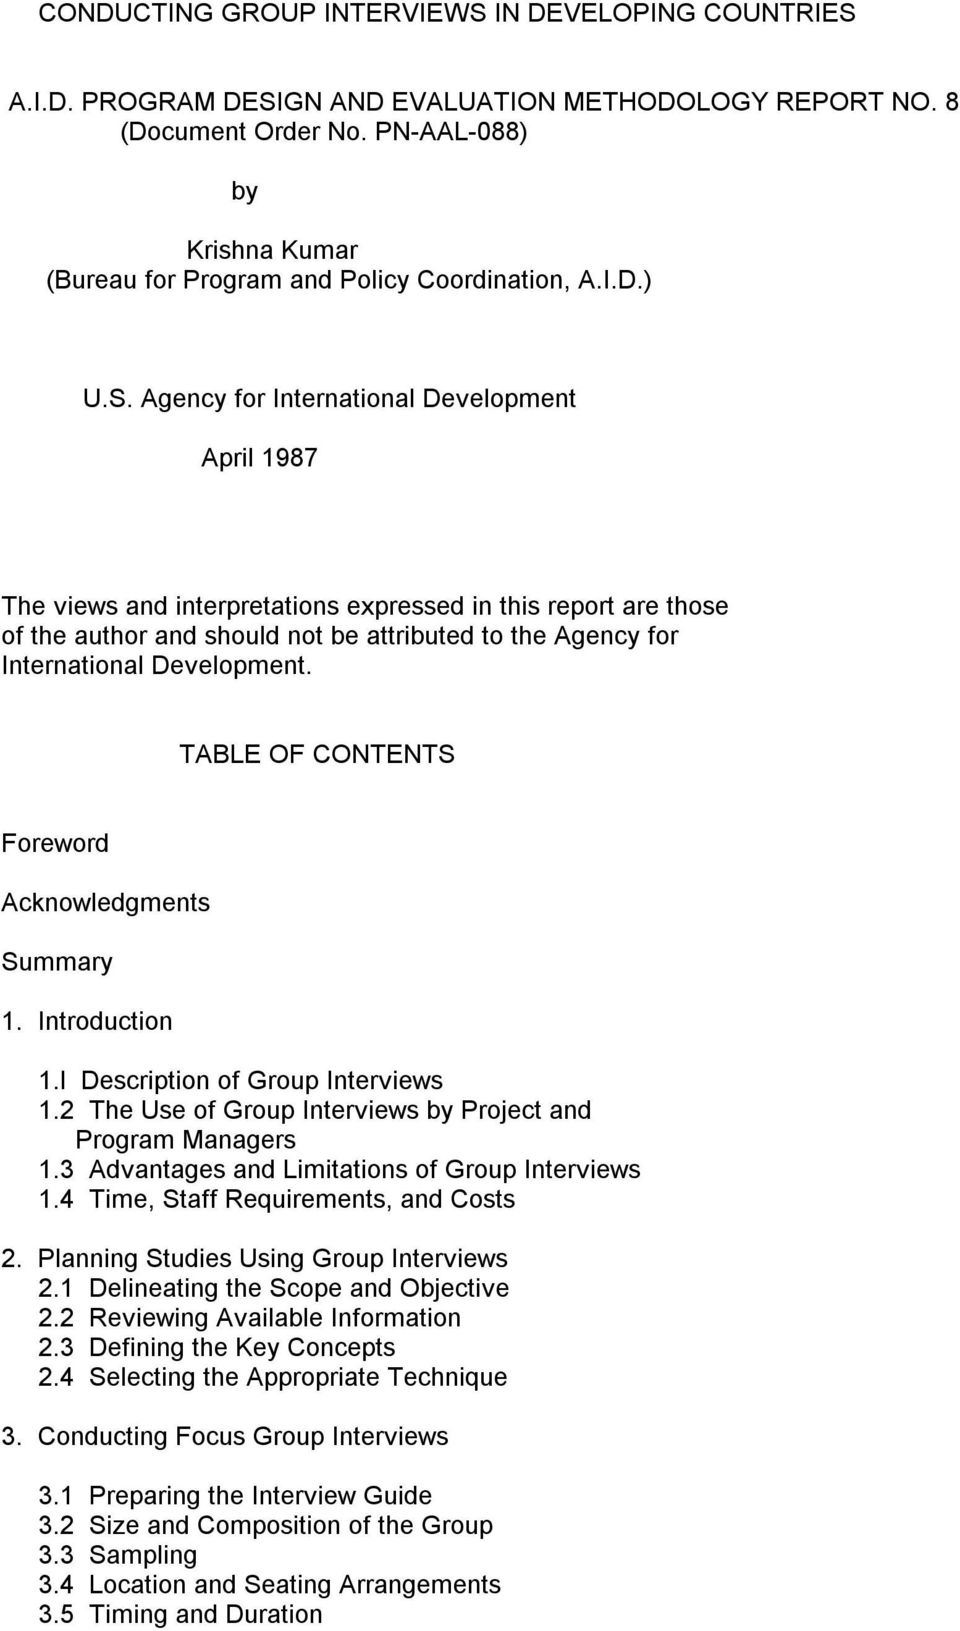 Agency for International Development April 1987 The views and interpretations expressed in this report are those of the author and should not be attributed to the Agency for International Development.